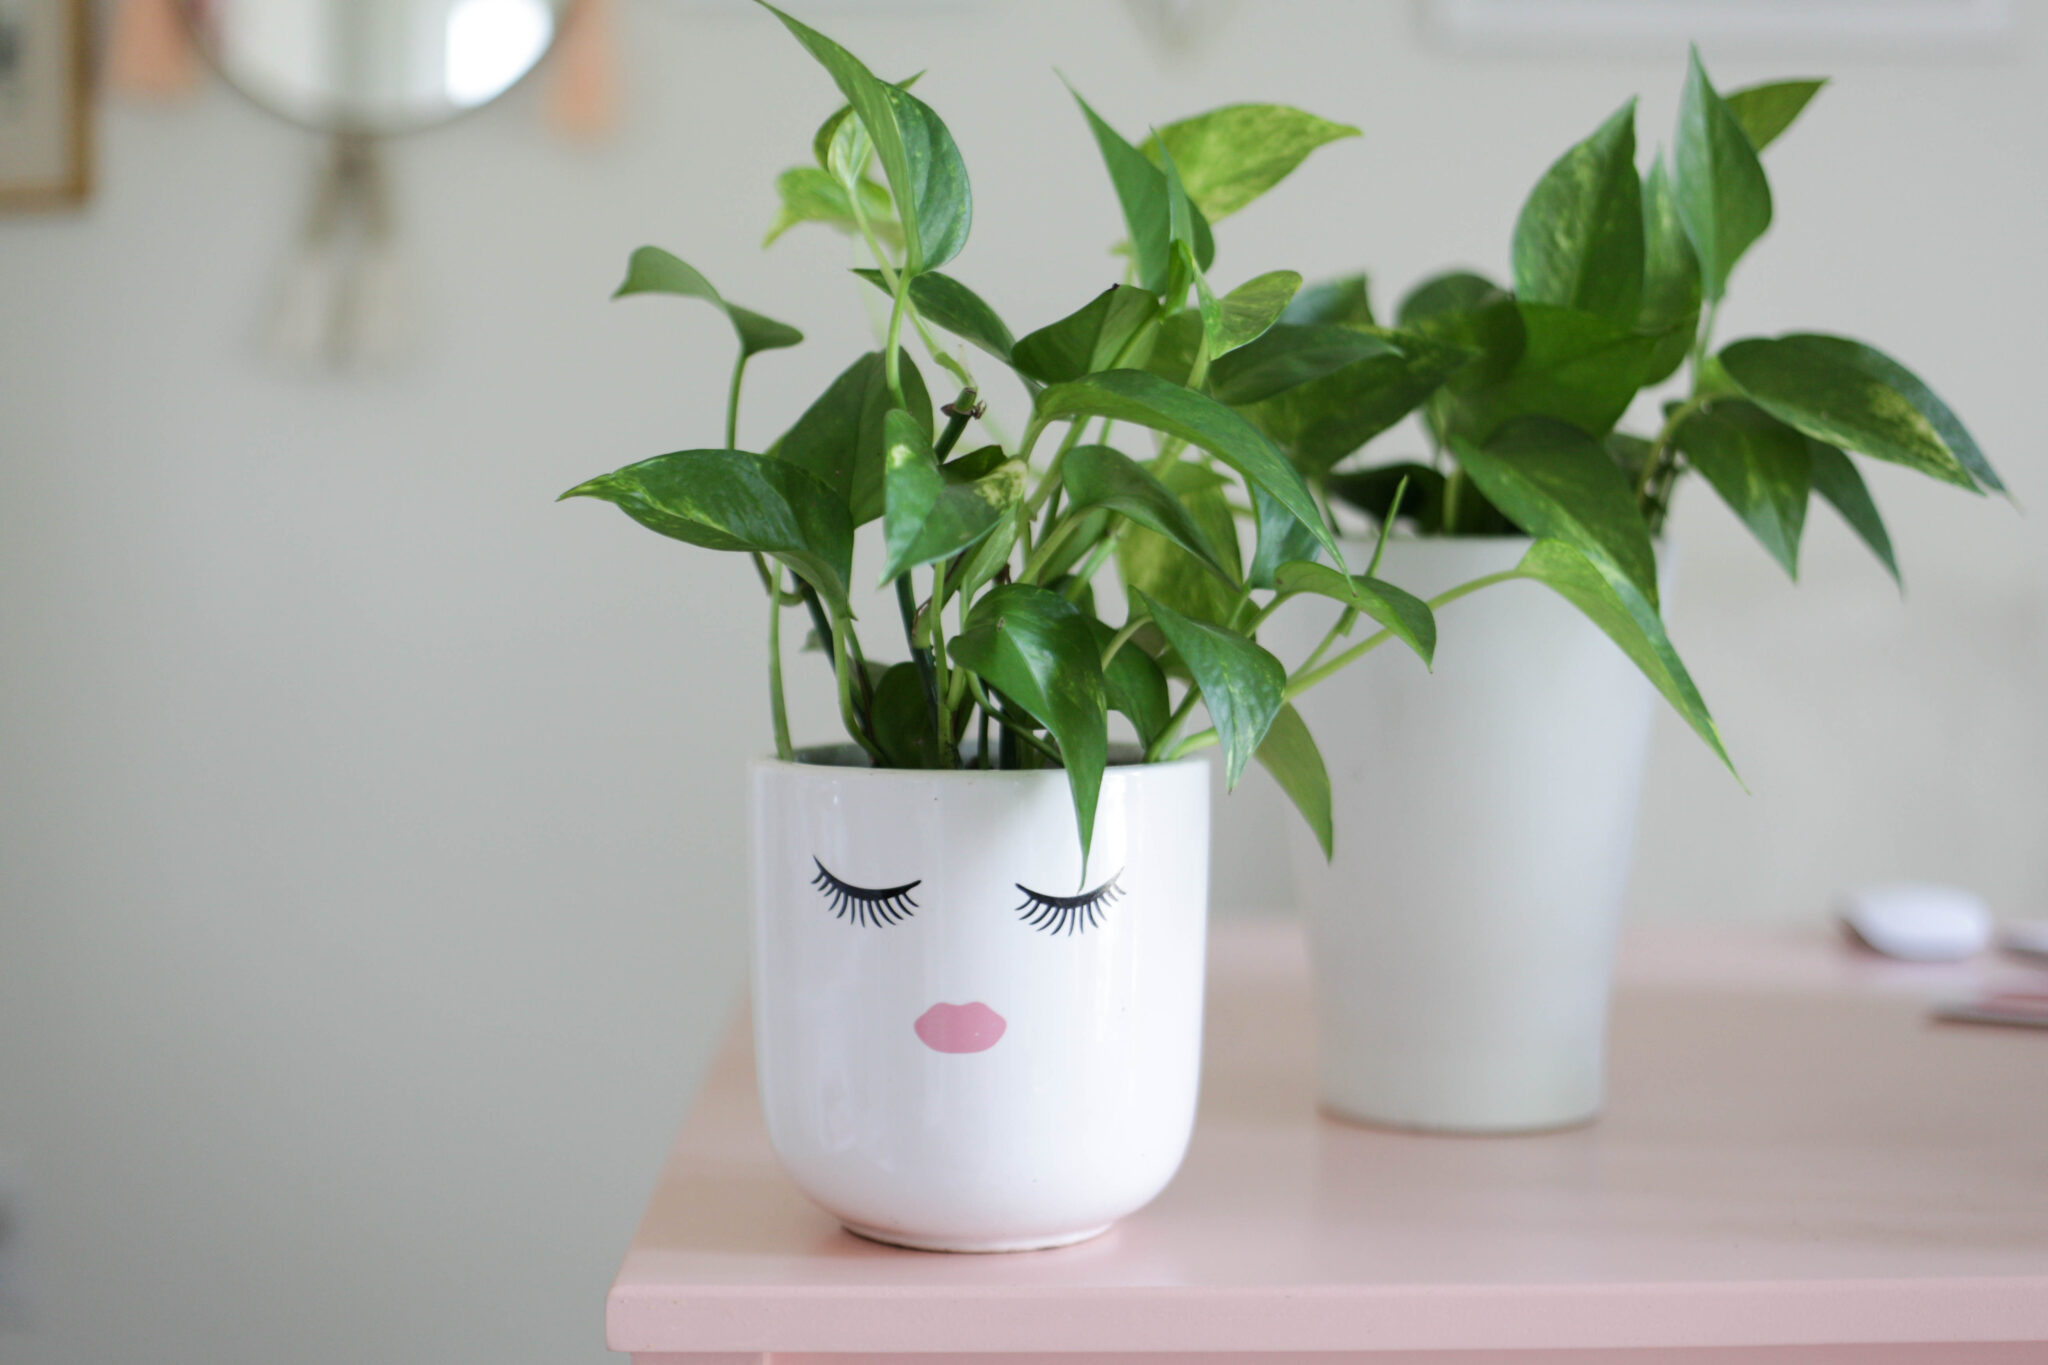 pothos plant in face pot with eyelashes